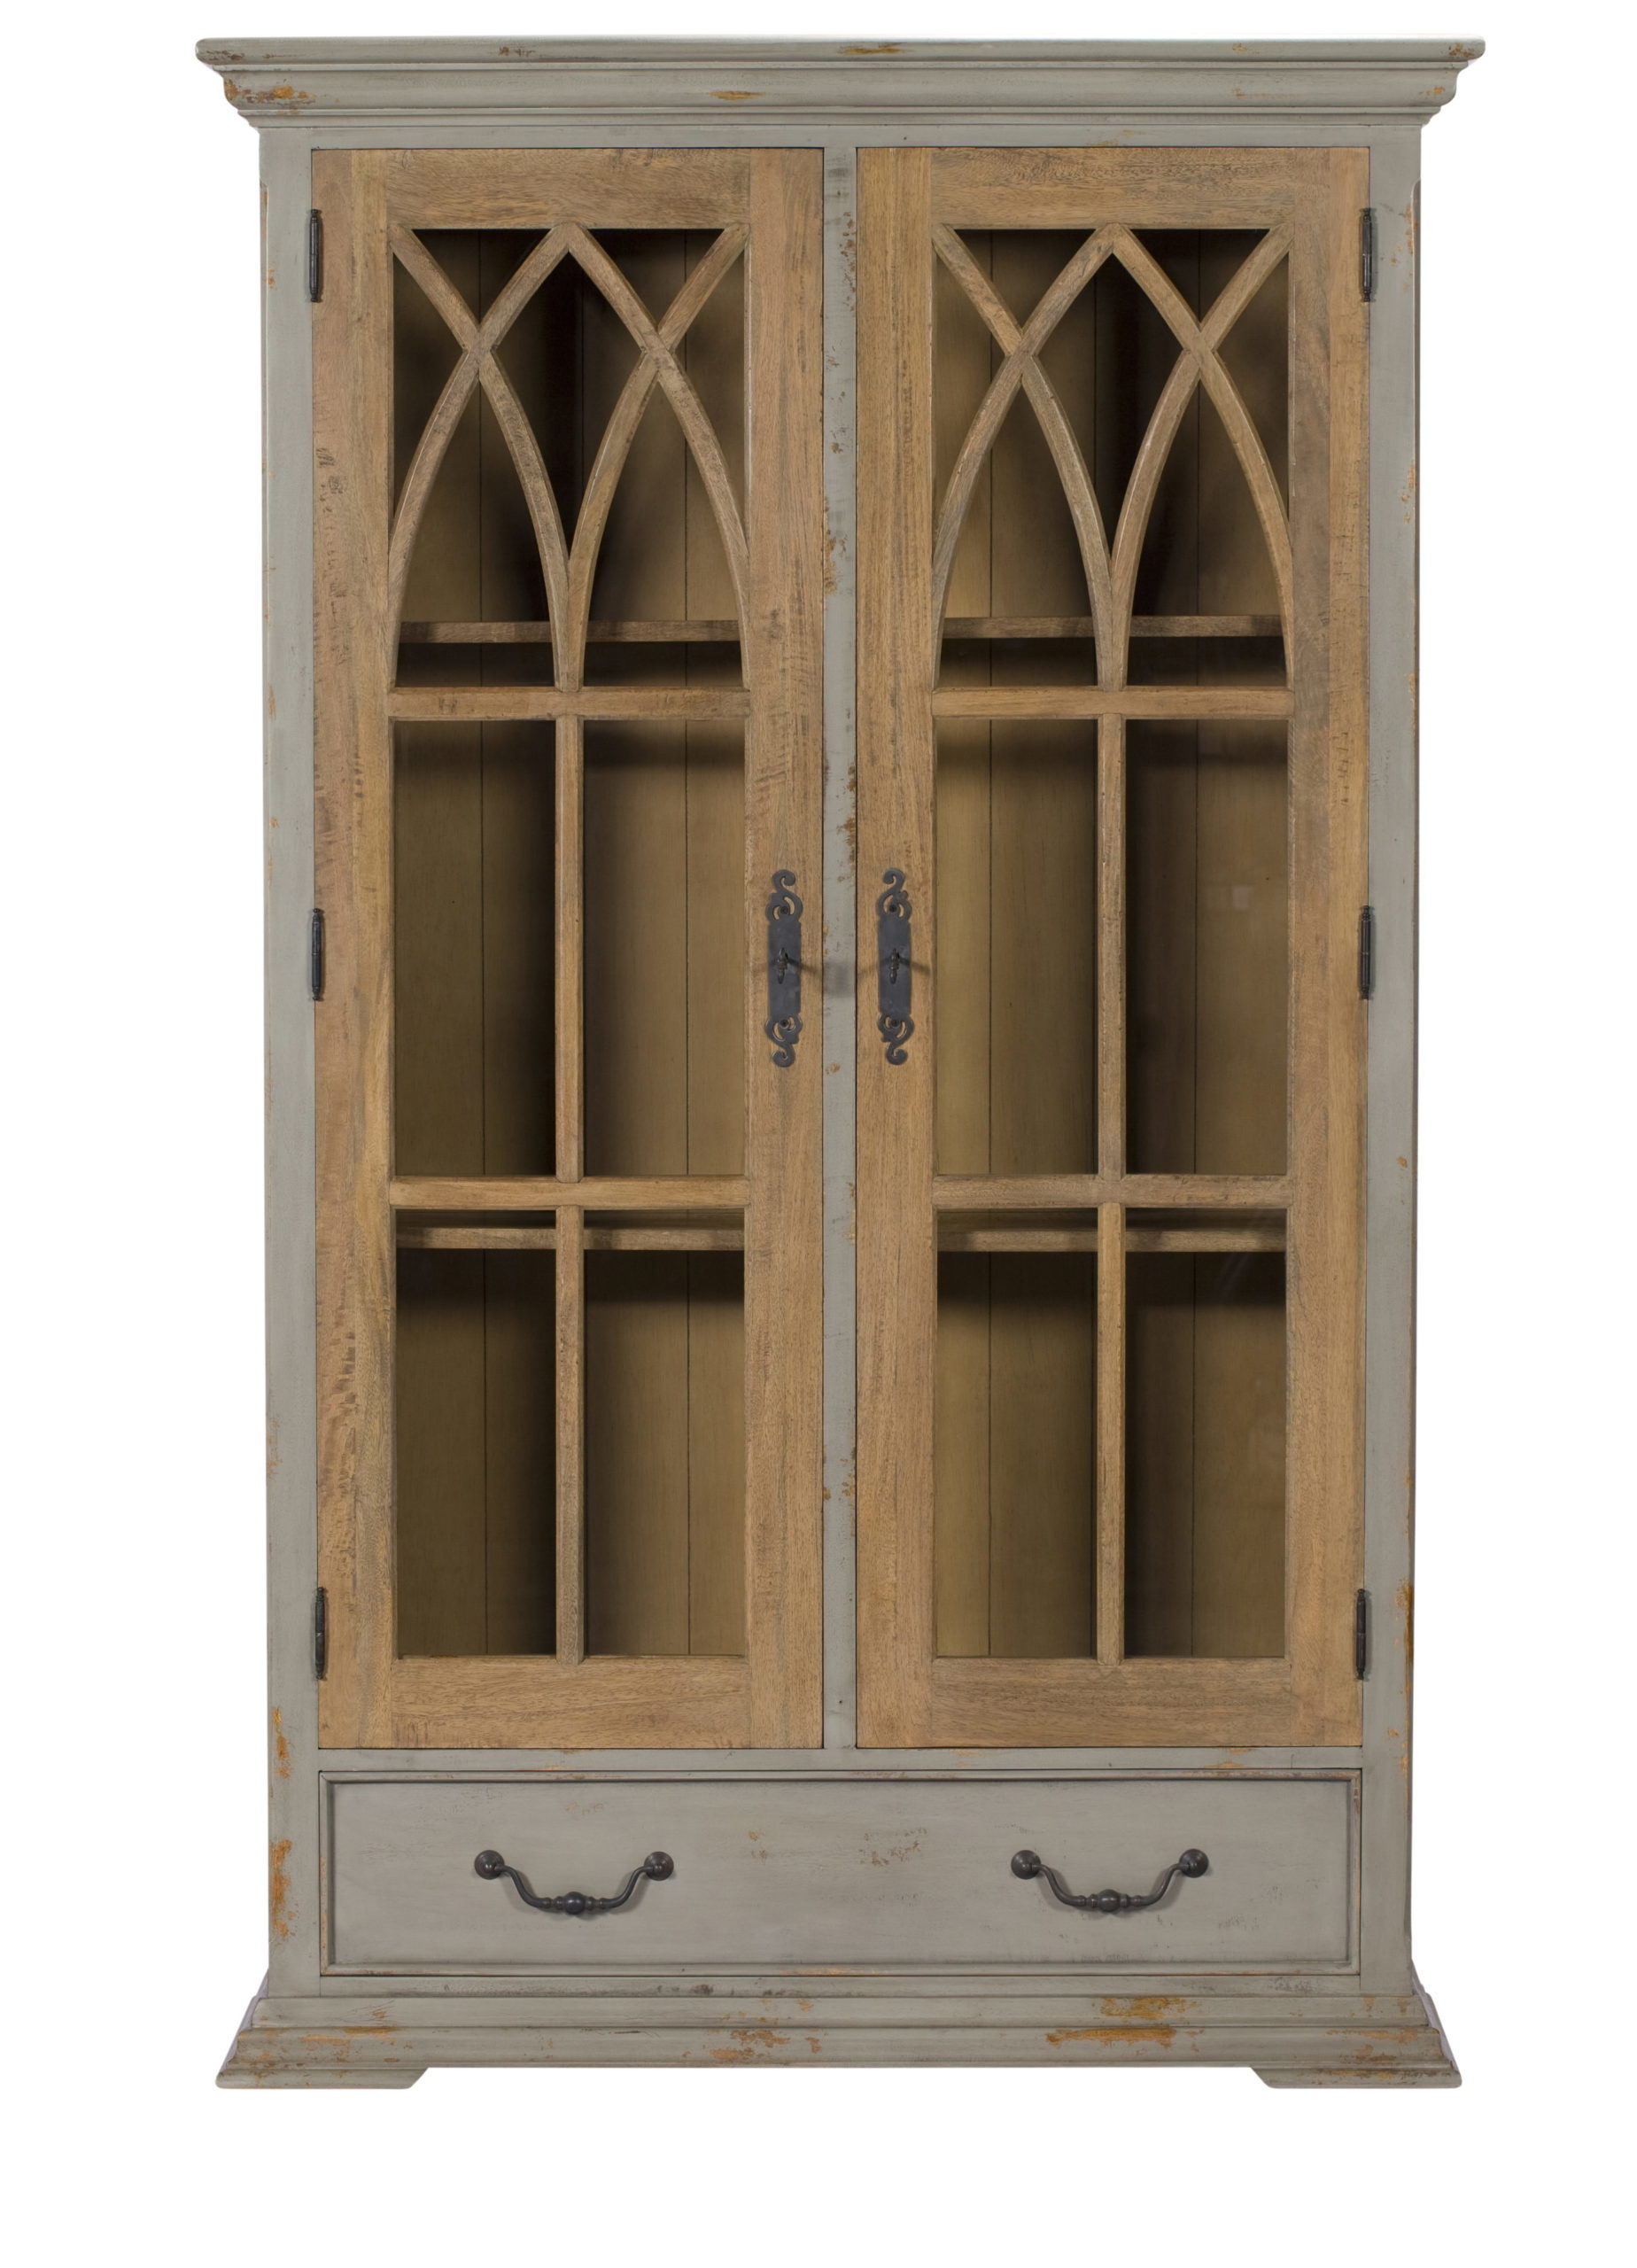 Canterbury Display Cabinet HD07 e1580221701490 scaled